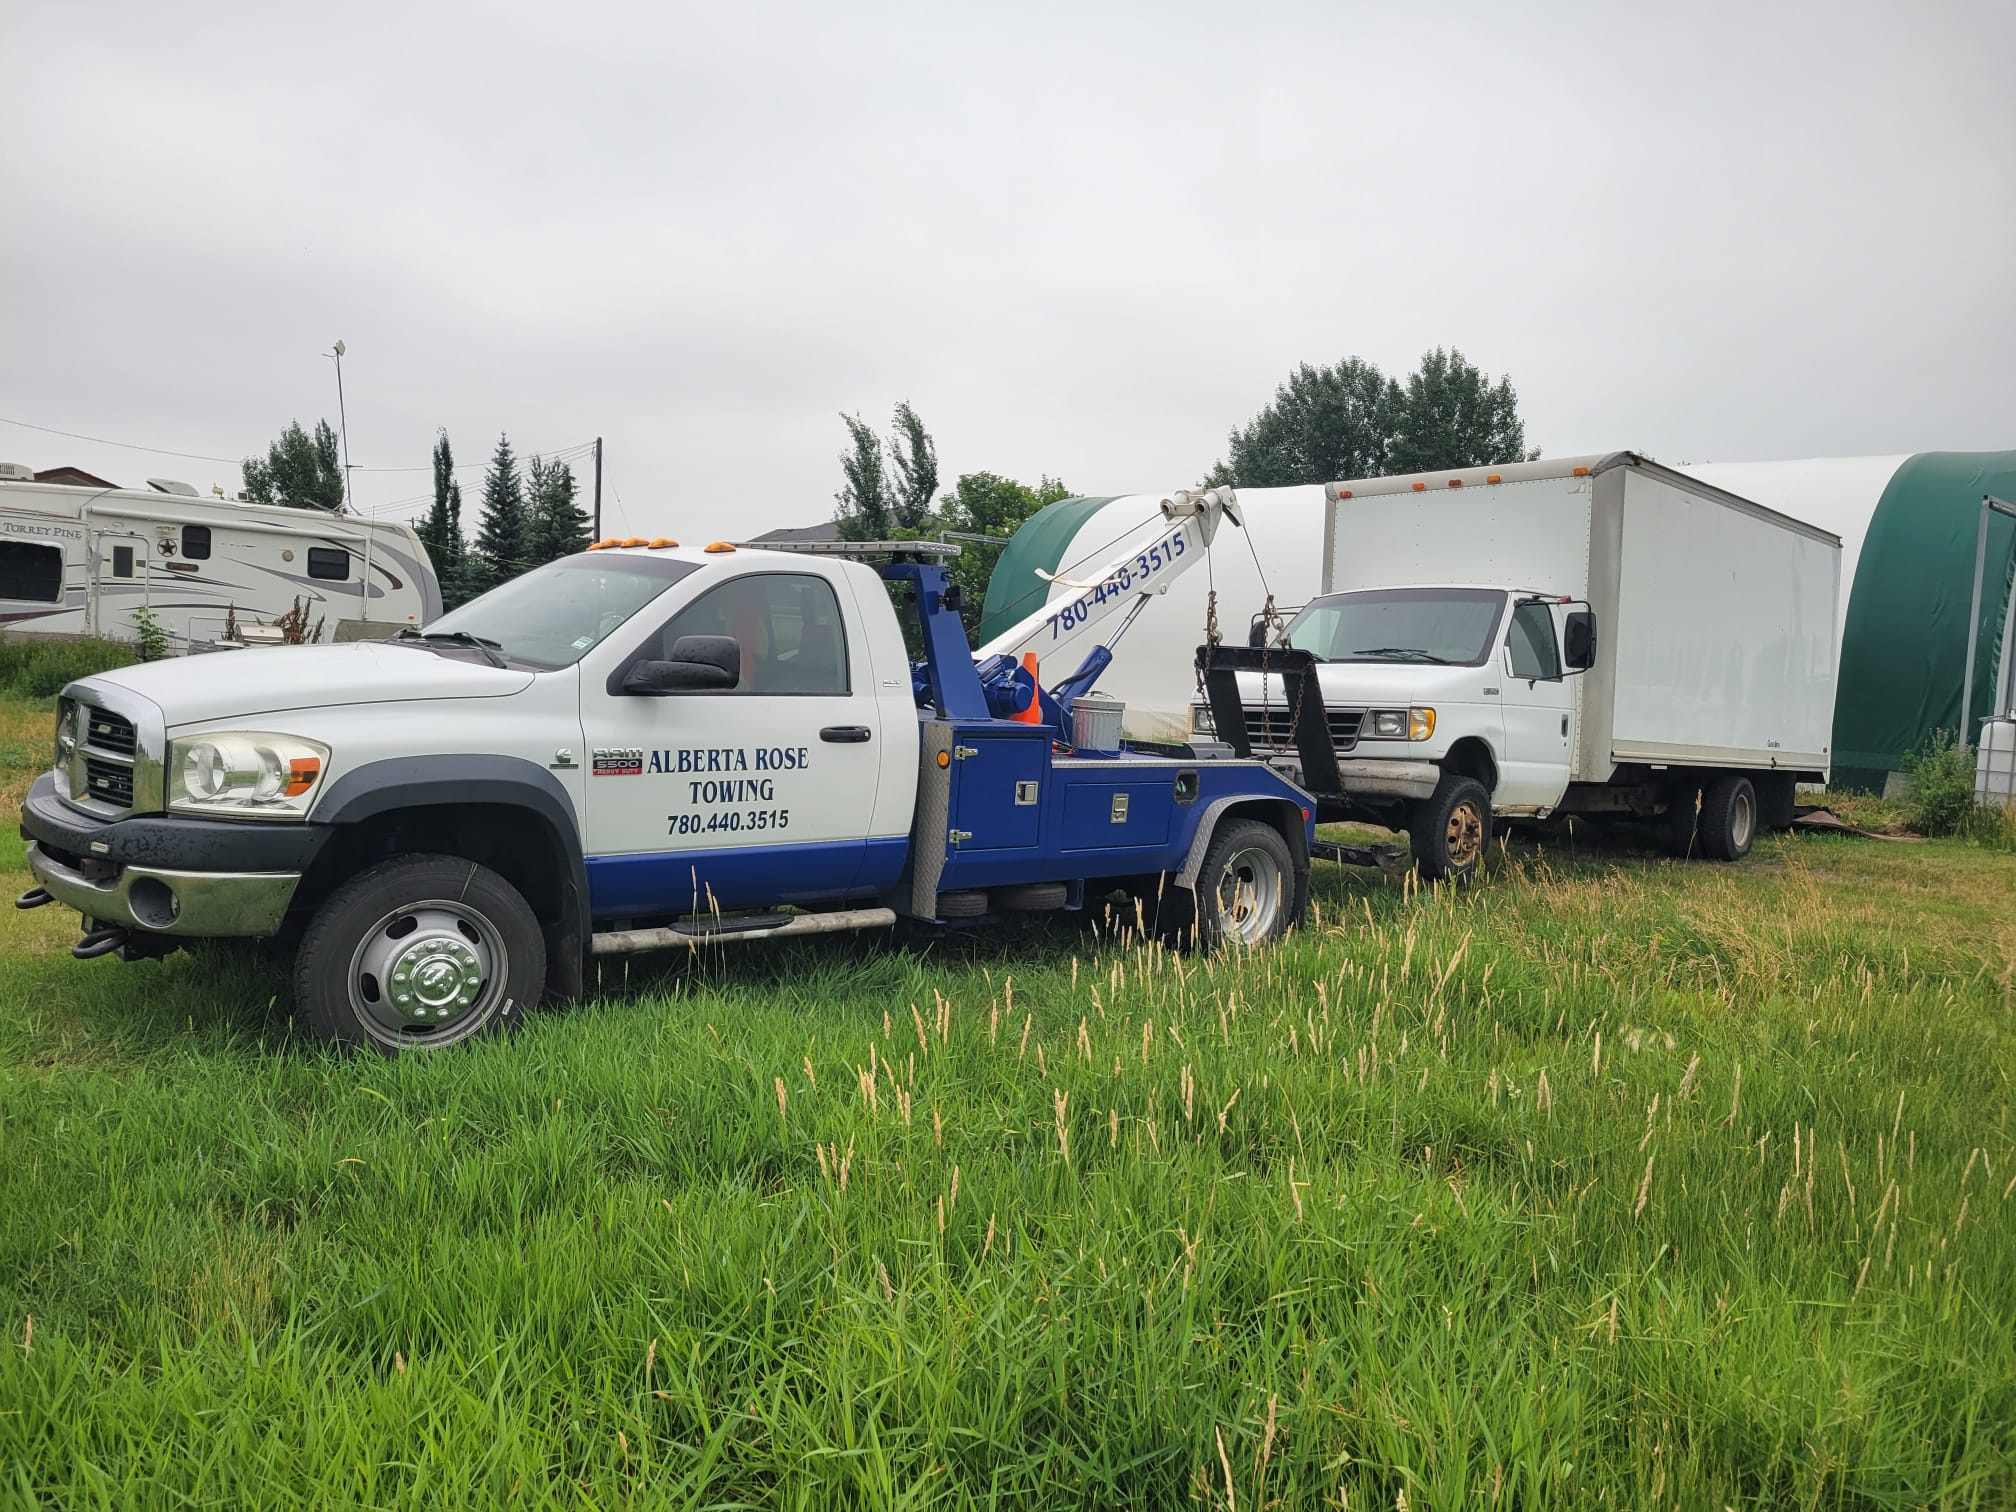 Towing services offered by Albertarose in Devon